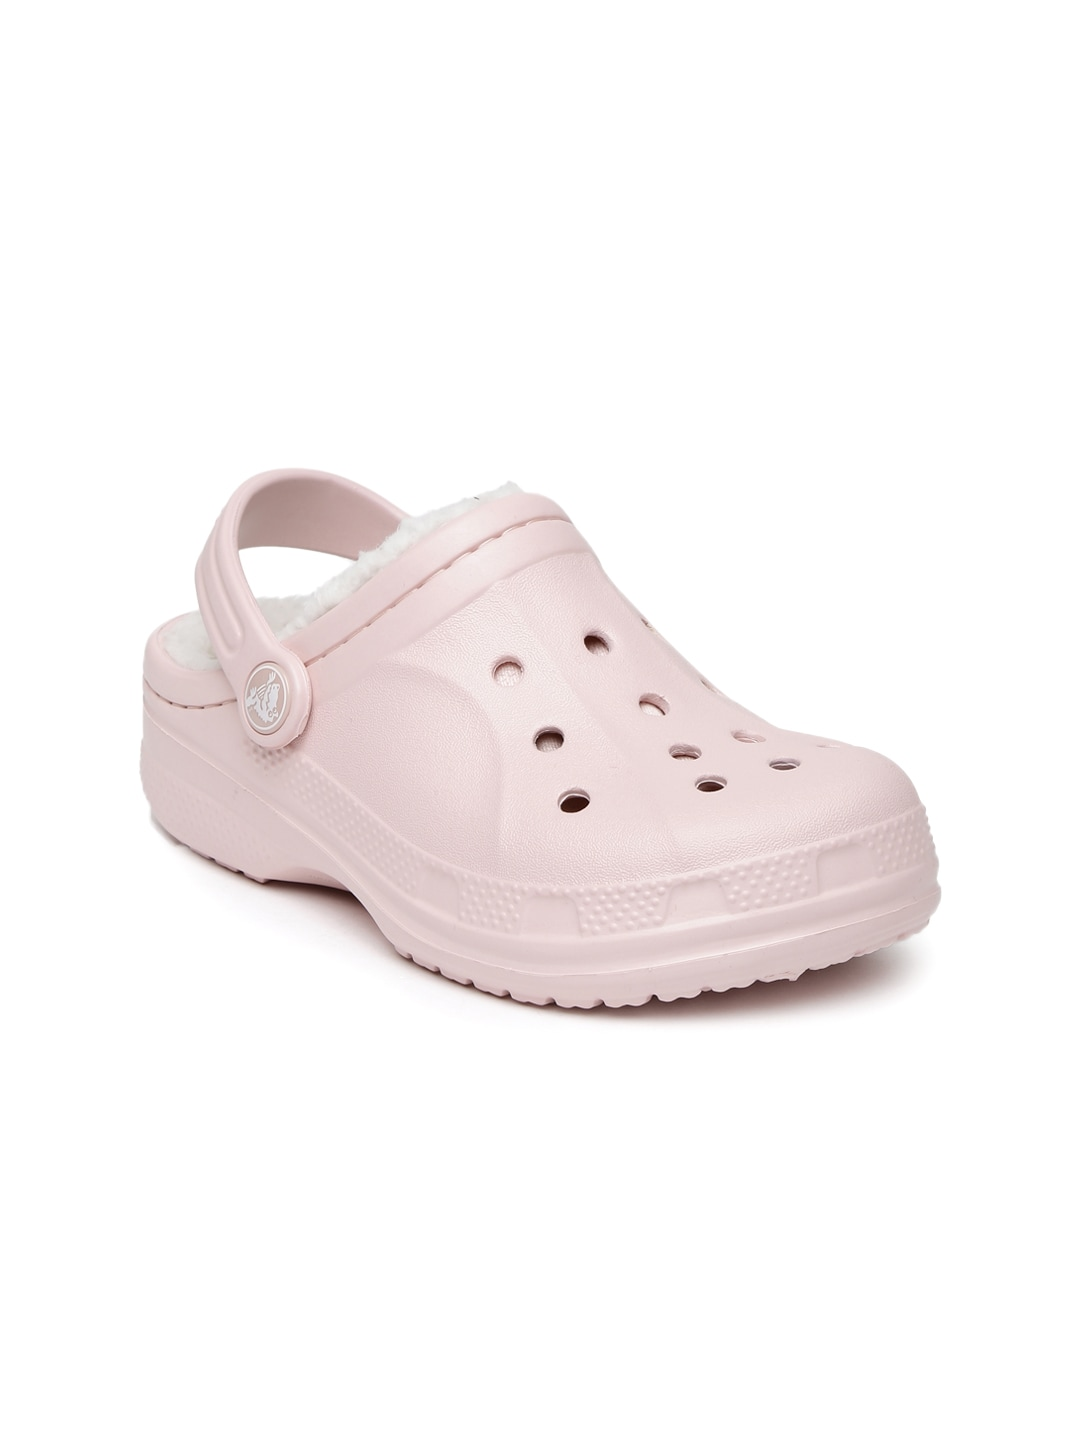 Crocs Kids Pink Ralen Lined Clogs image